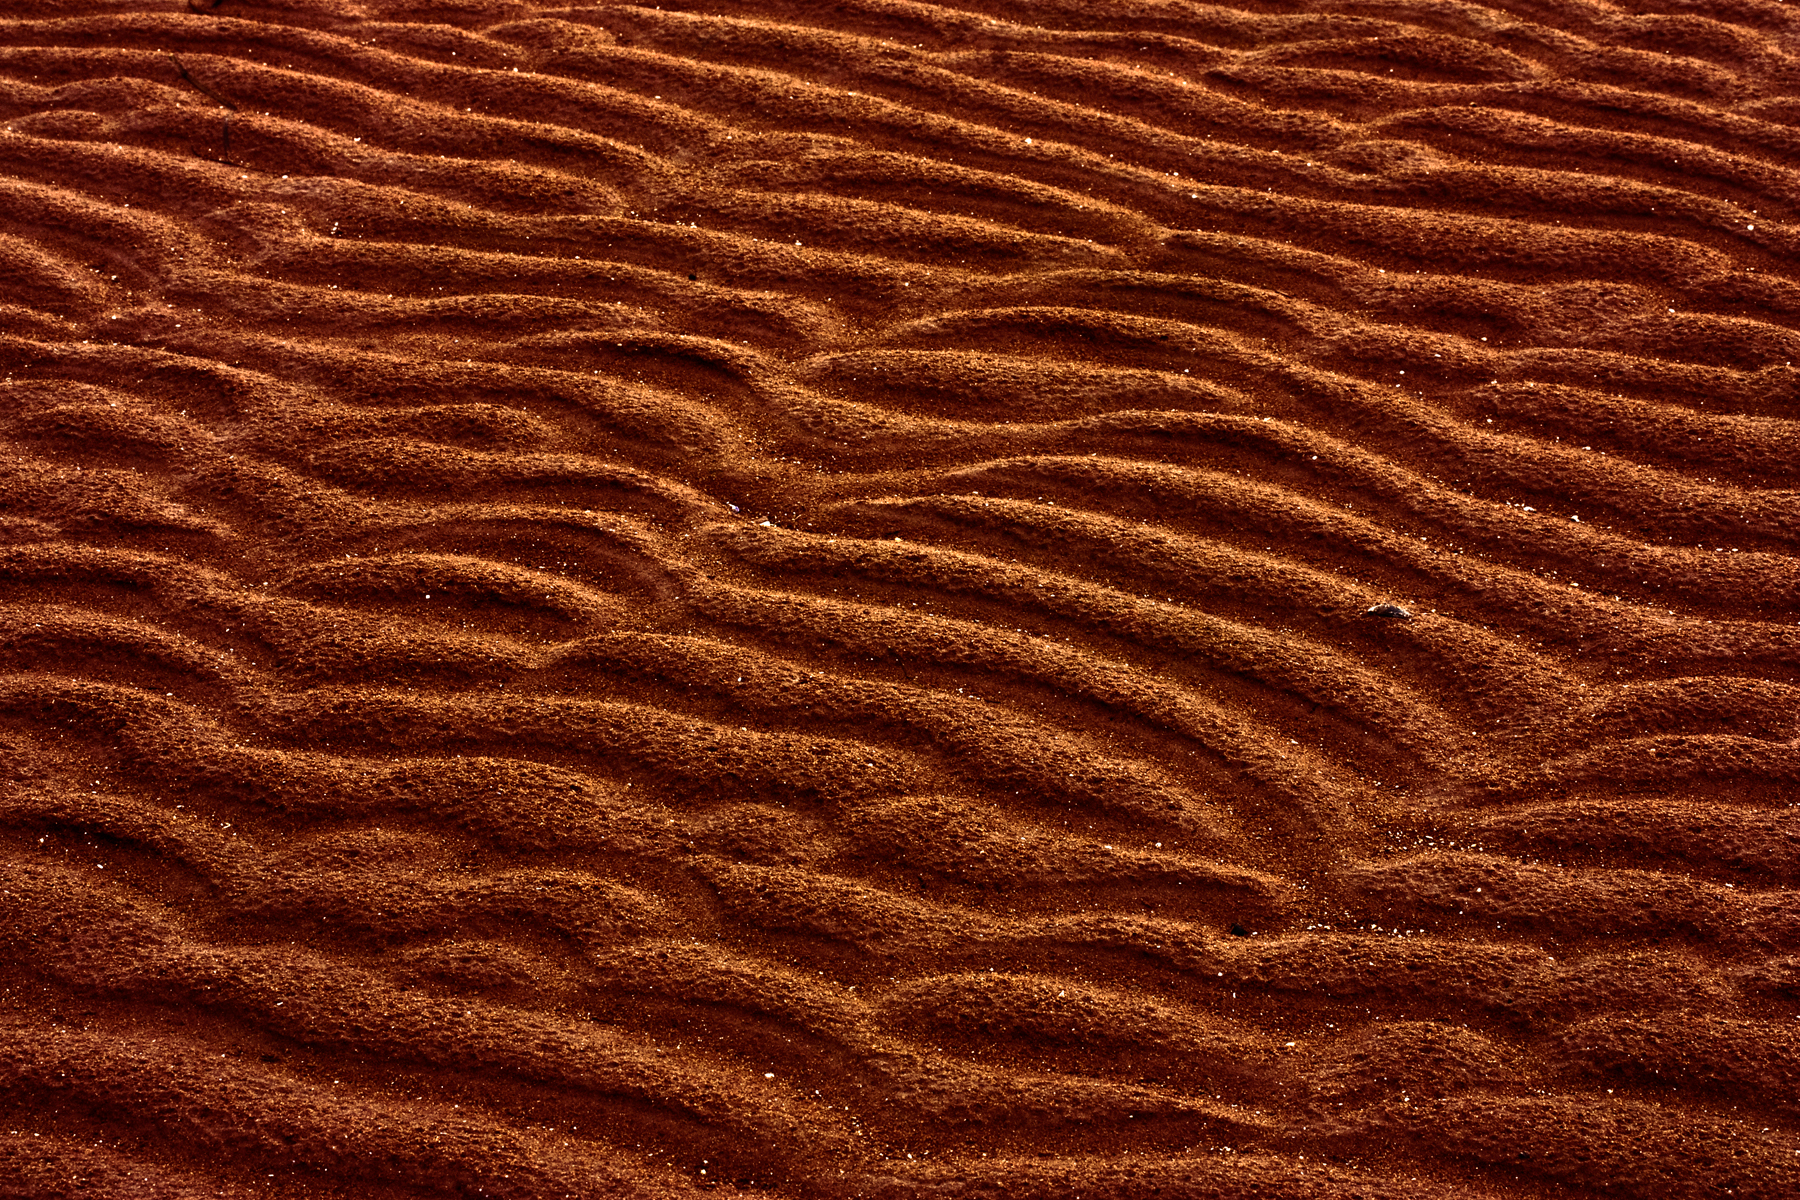 Sand Ridges Texture, Abstract, Sandy, Resource, Ridge, HQ Photo